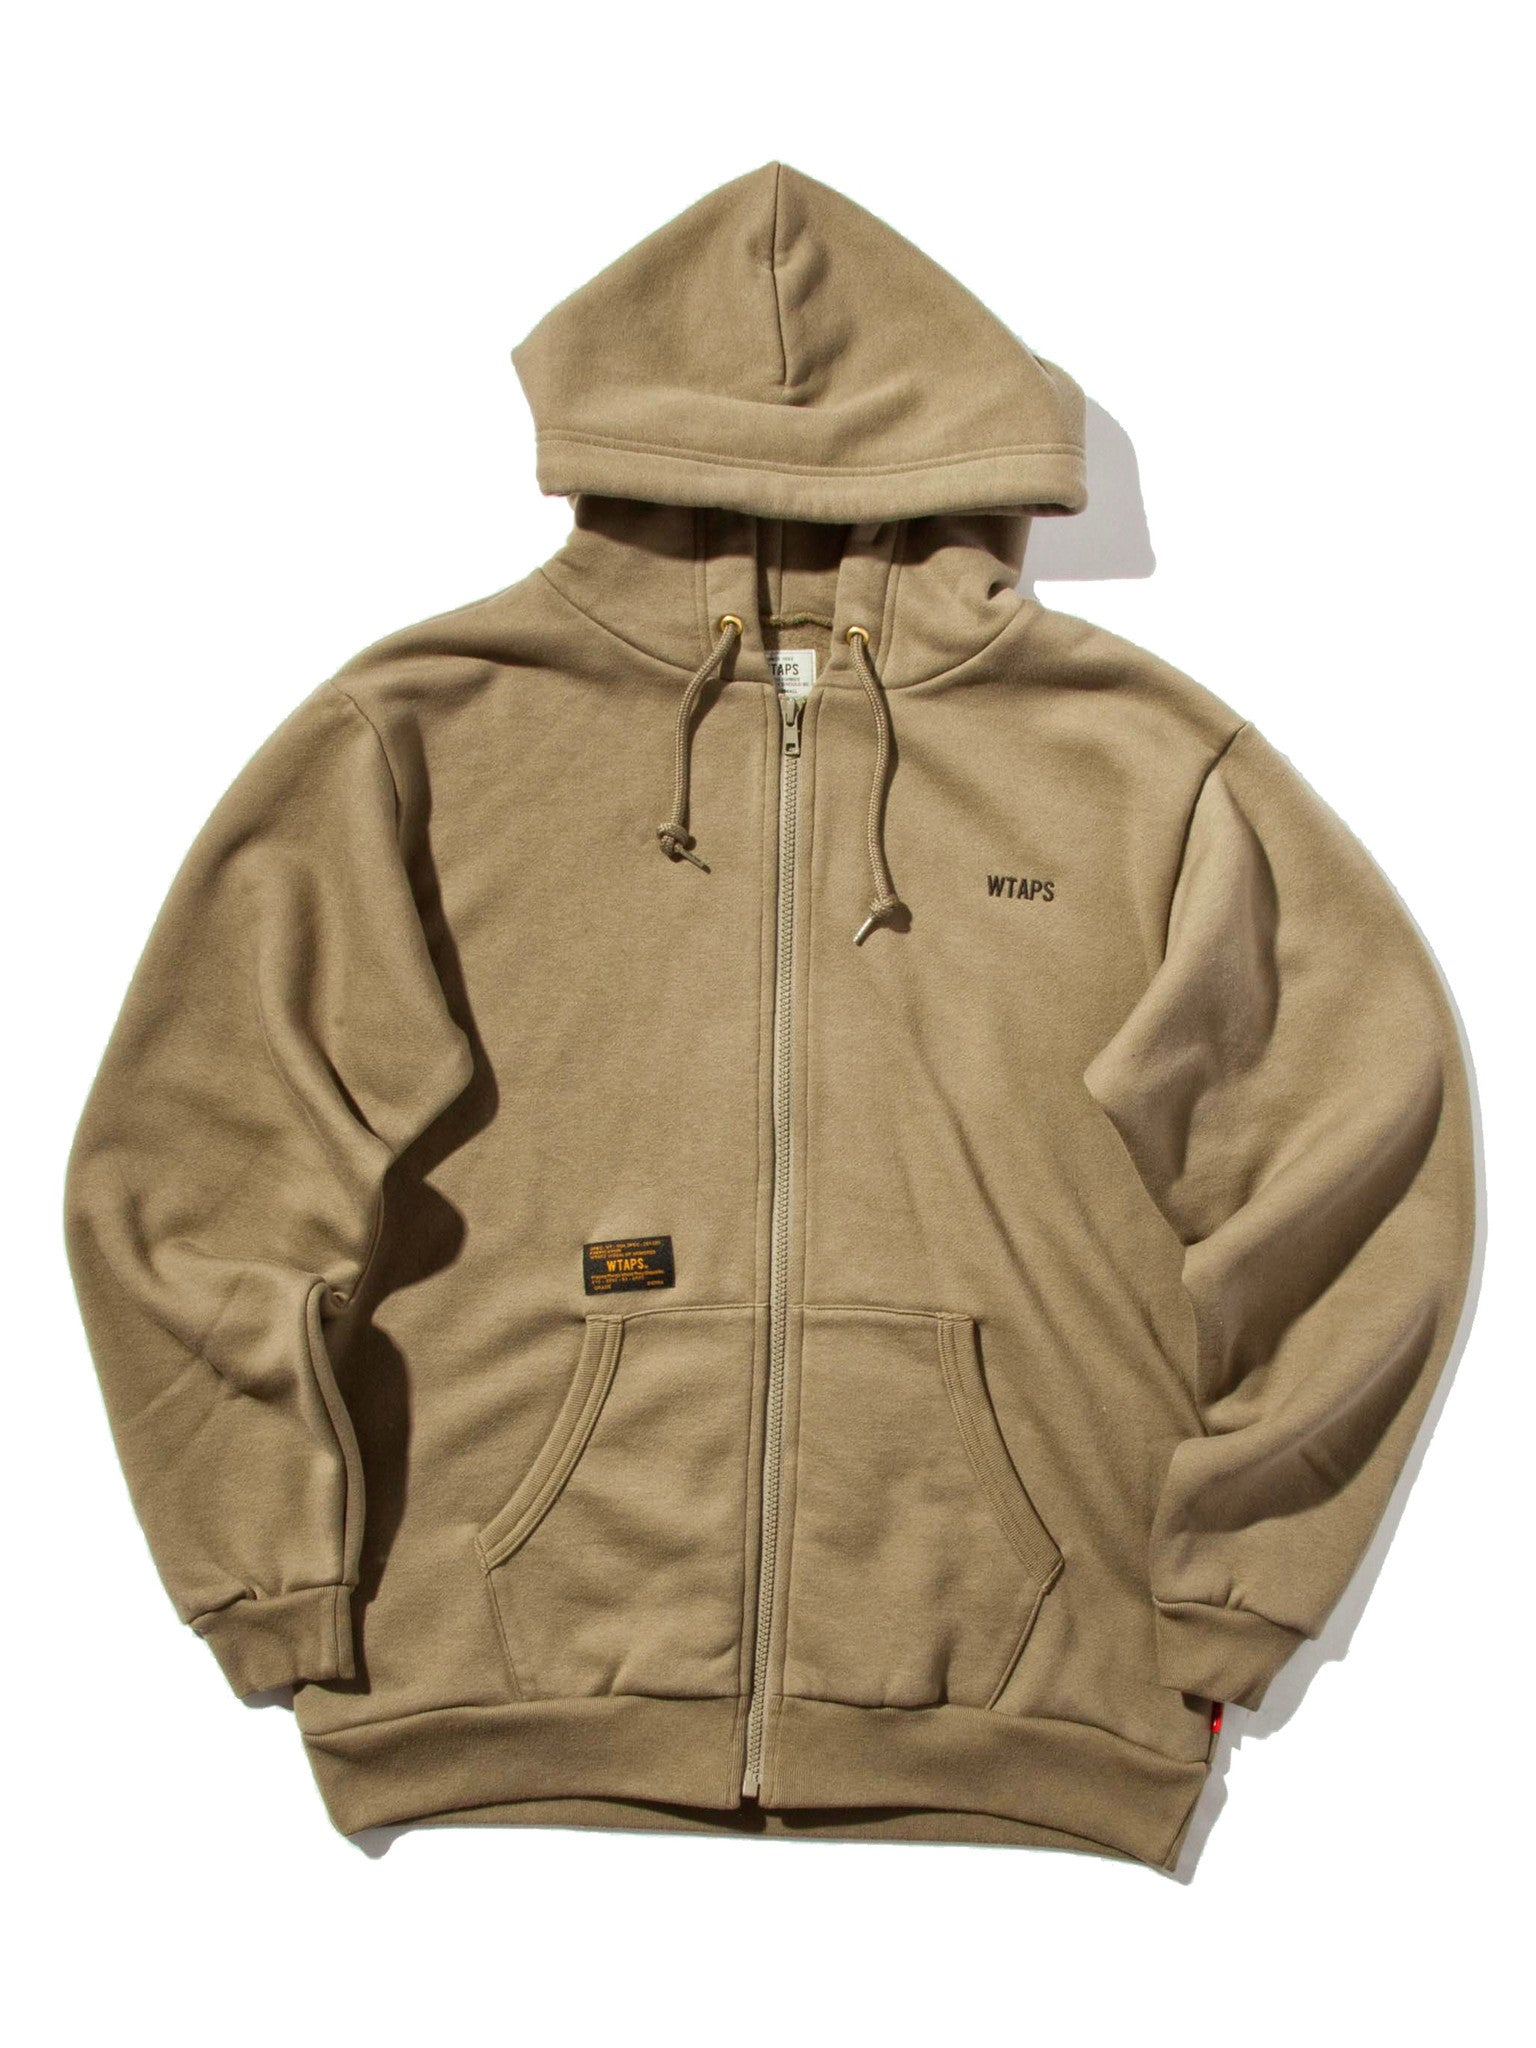 Olive Drab Hellweek Zip Up WTVUA Sweatshirt 8